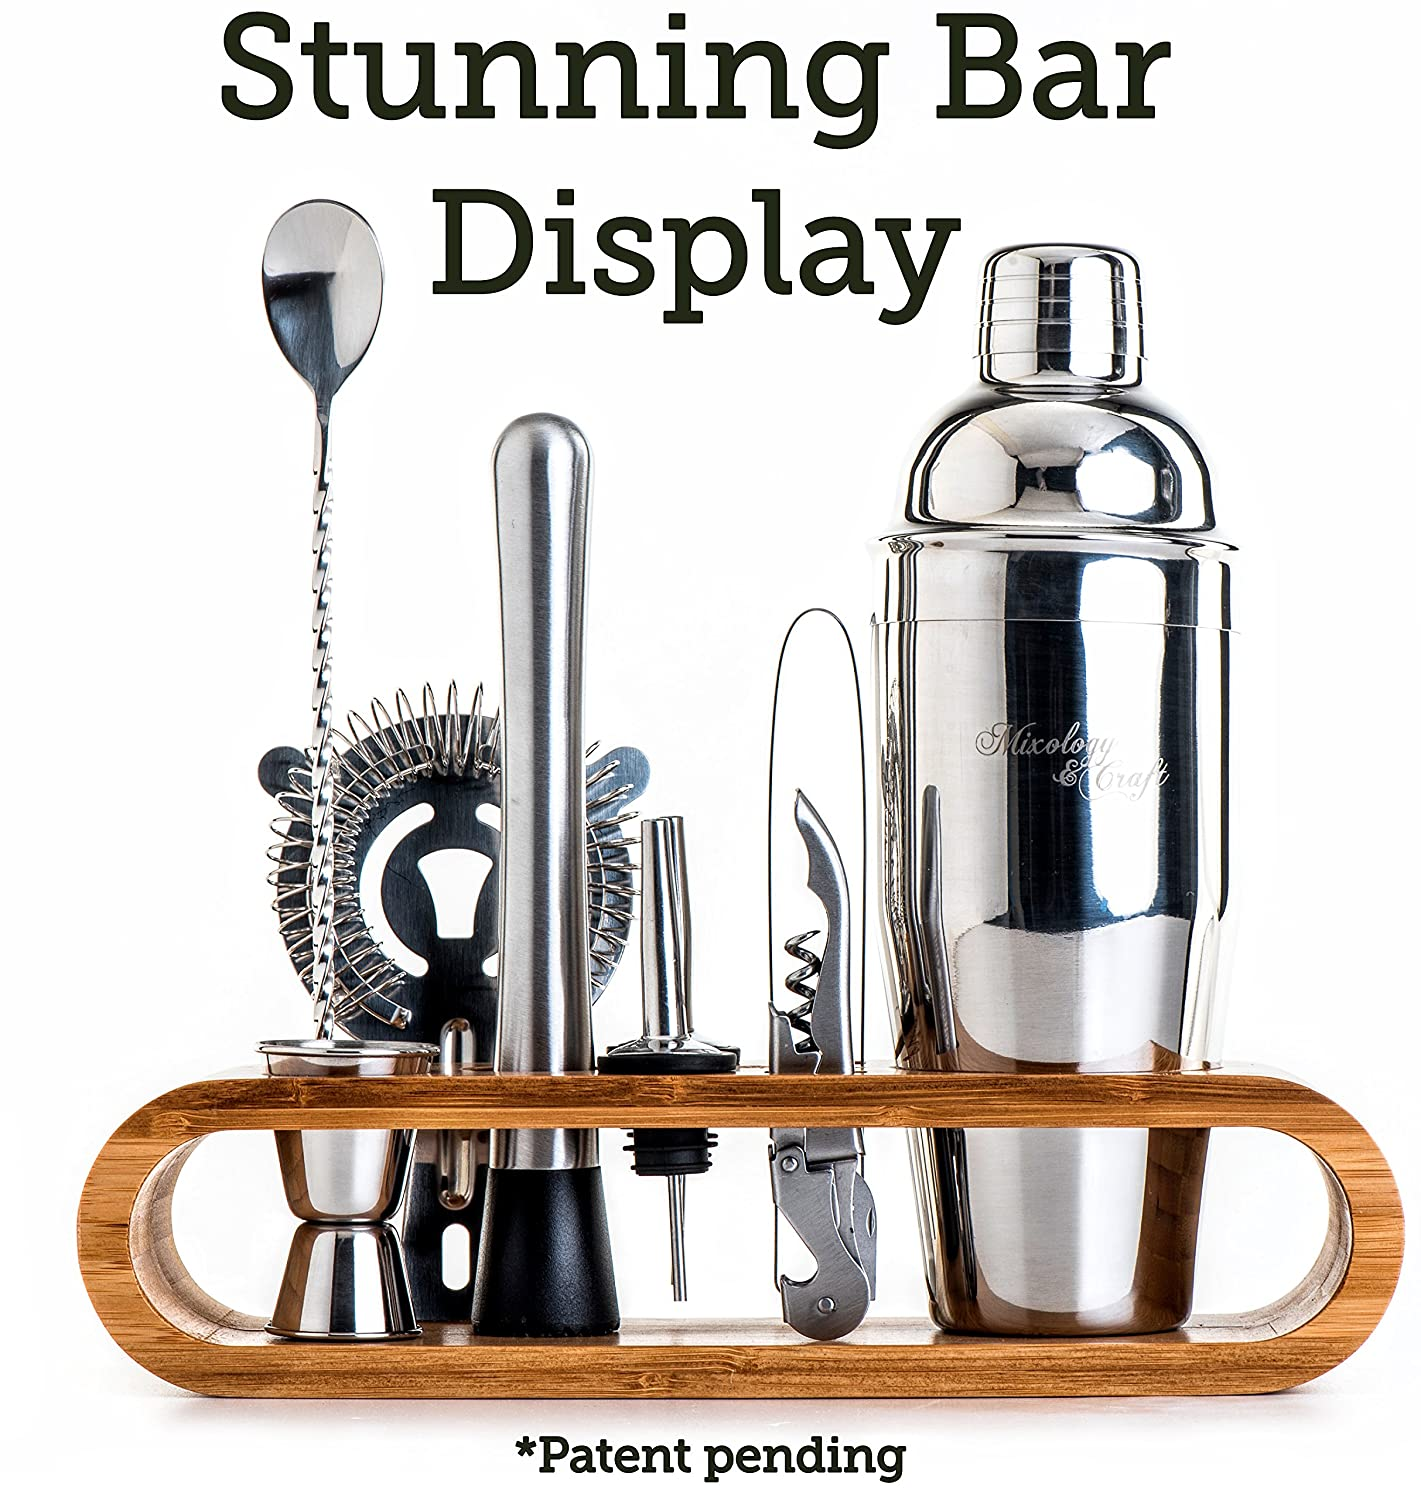 Perfect Home Bartending Kit and Cocktail Shaker Set For an Awesome Drink Mixing Experience Exclusive Cocktail Recipes Bonus 10-Piece Bar Tool Set with Stylish Bamboo Stand Mixology Bartender Kit